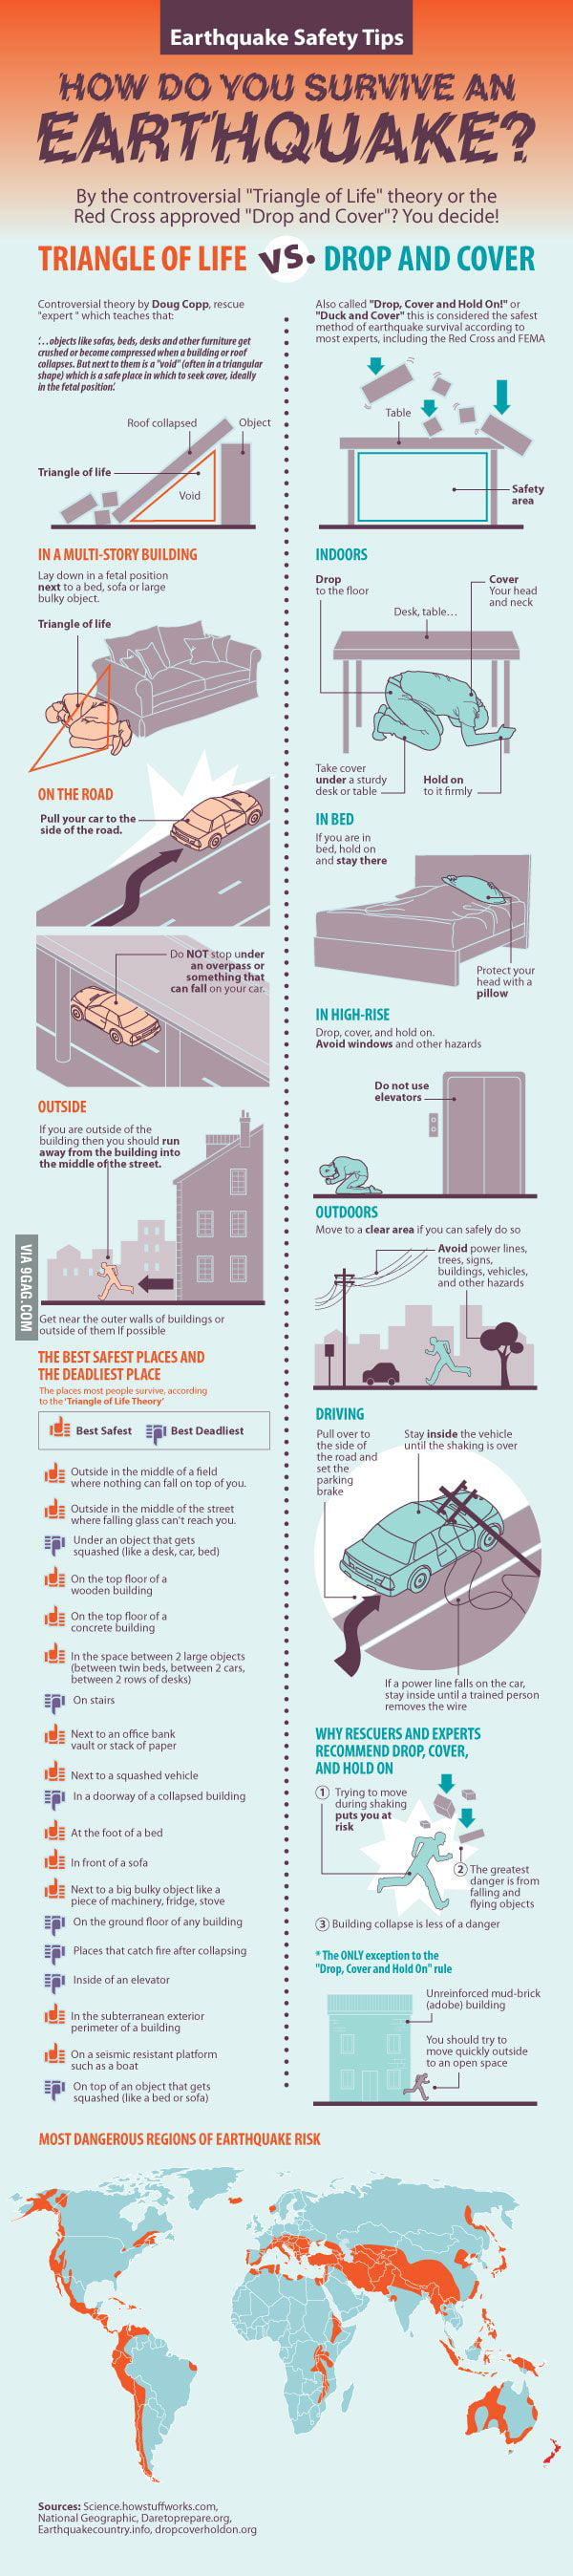 Earthquake safety tips that everyone needs to know.